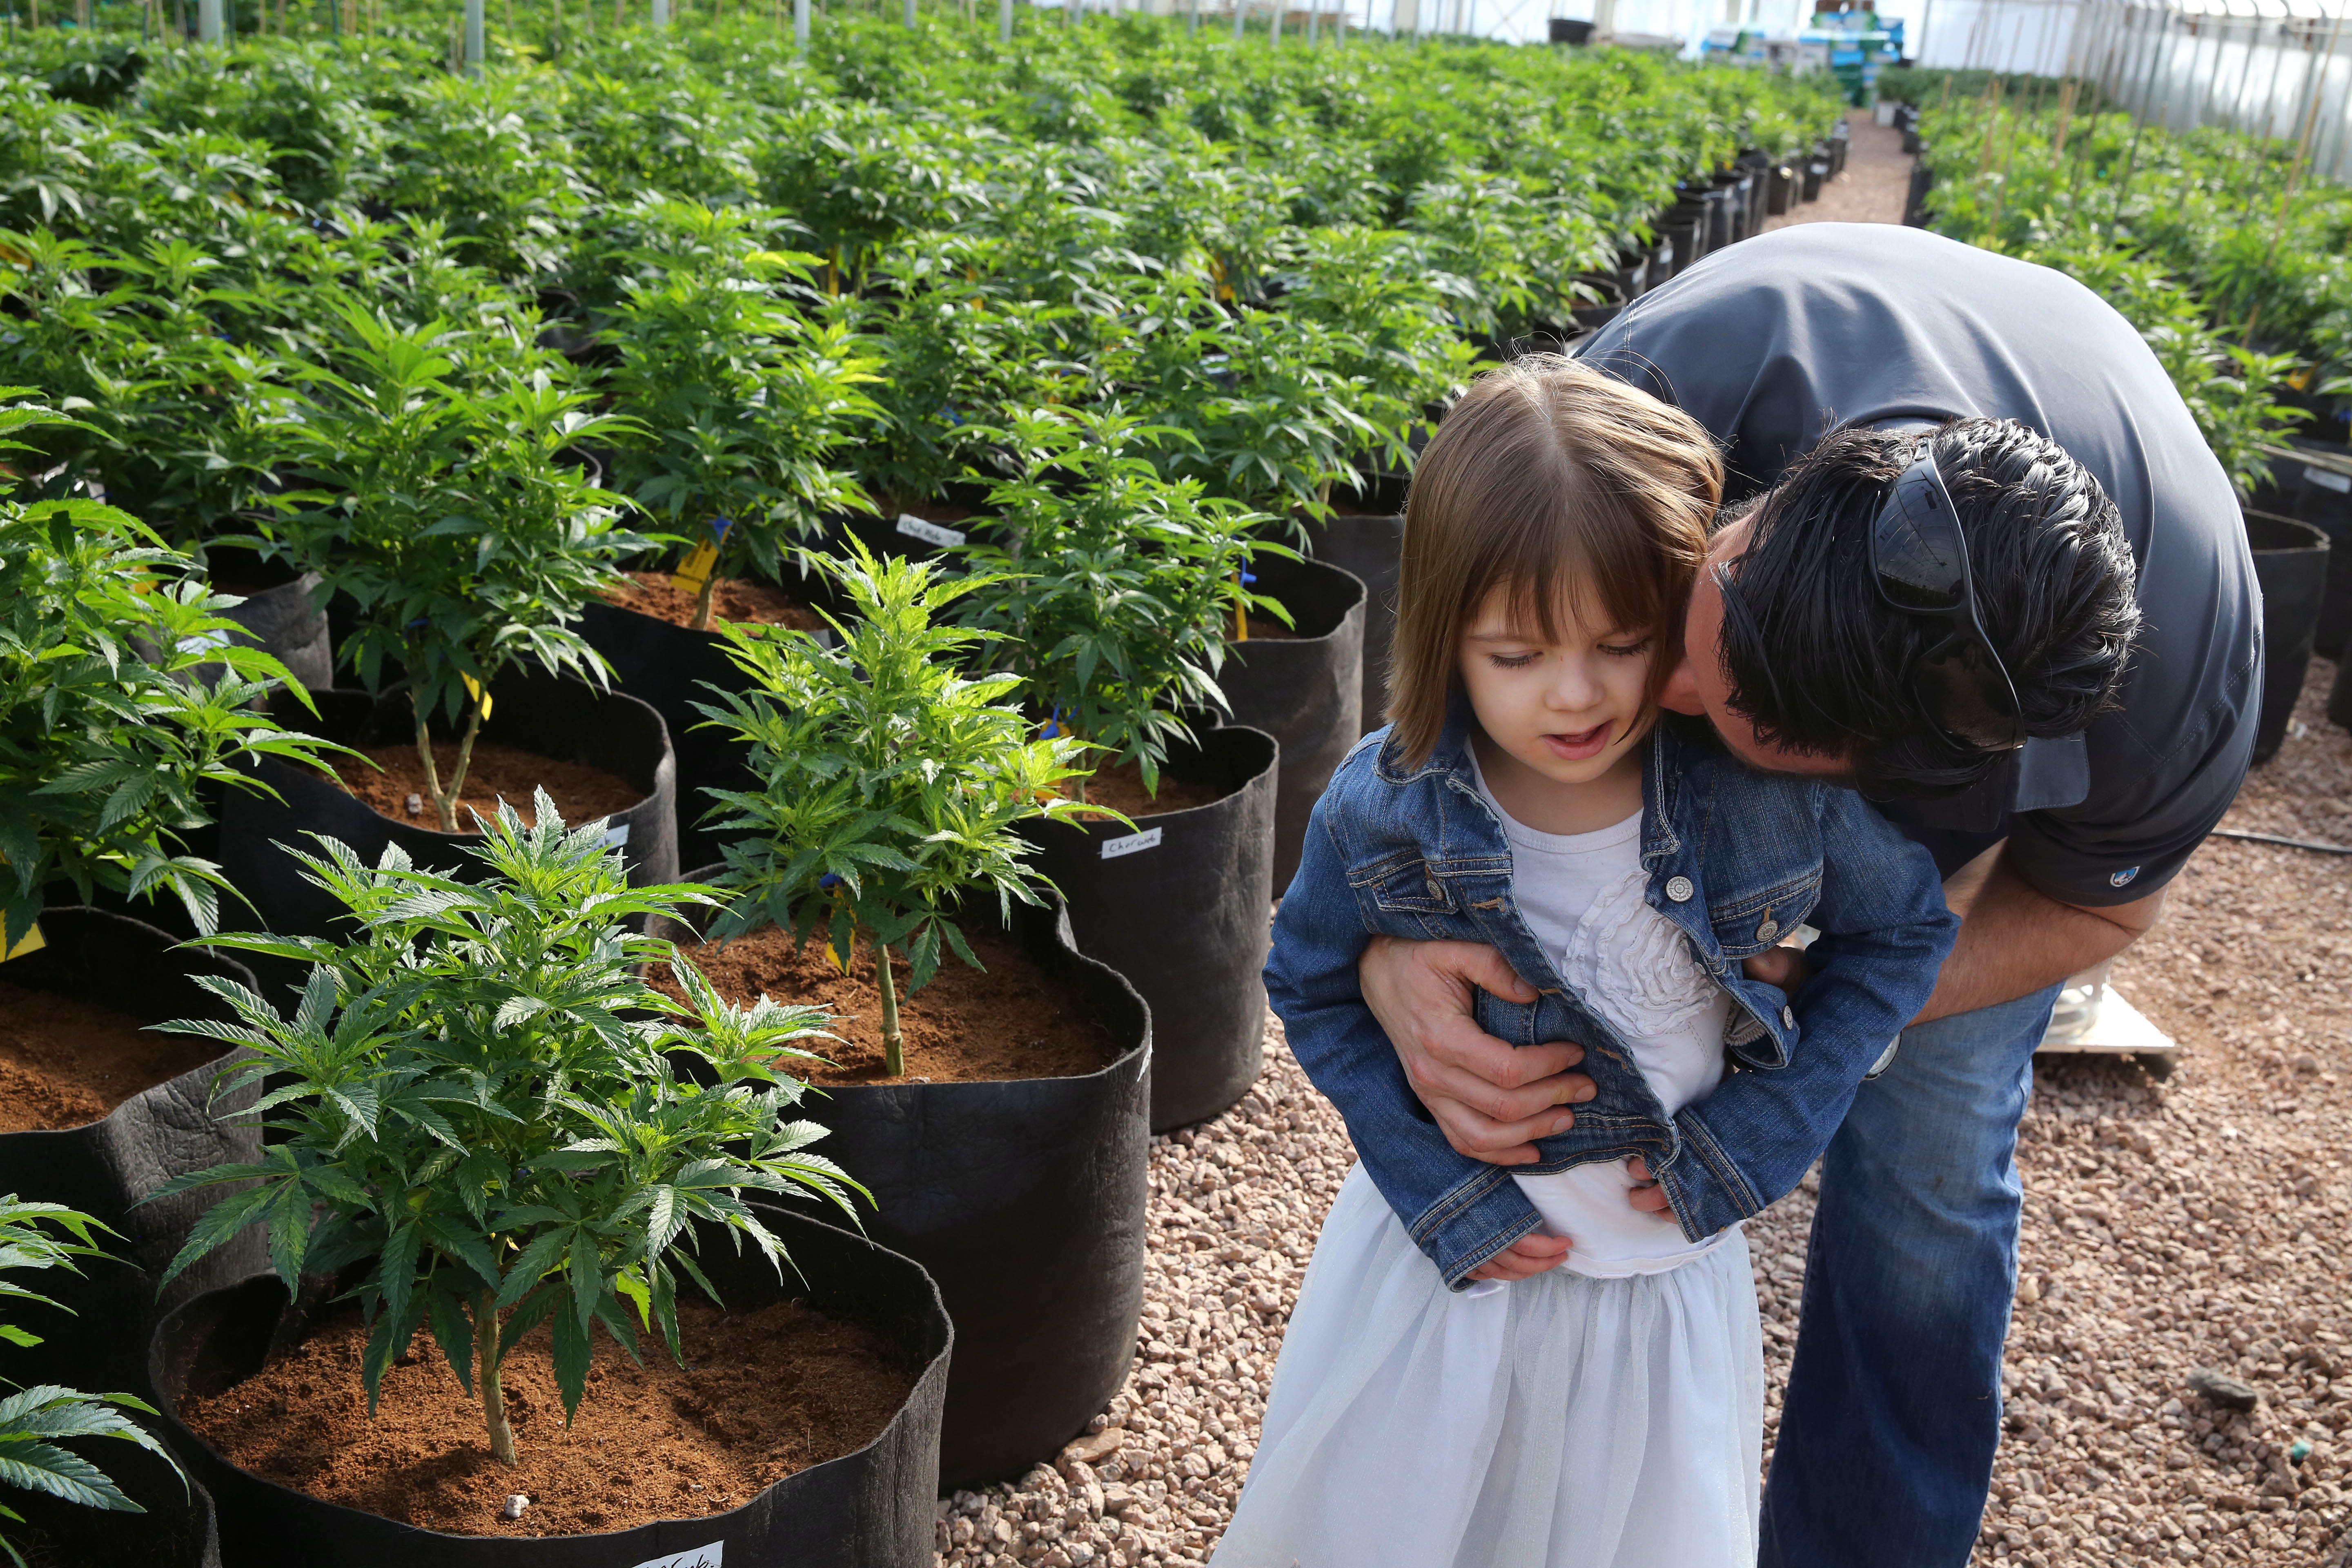 Matt Figi hugs his 7-year-old daughter Charlotte inside a Colorado greenhouse. The plants are a special strain of medical marijuana known as Charlotte's Web, which was named for Charlotte after she used the plant to treat epileptic seizures